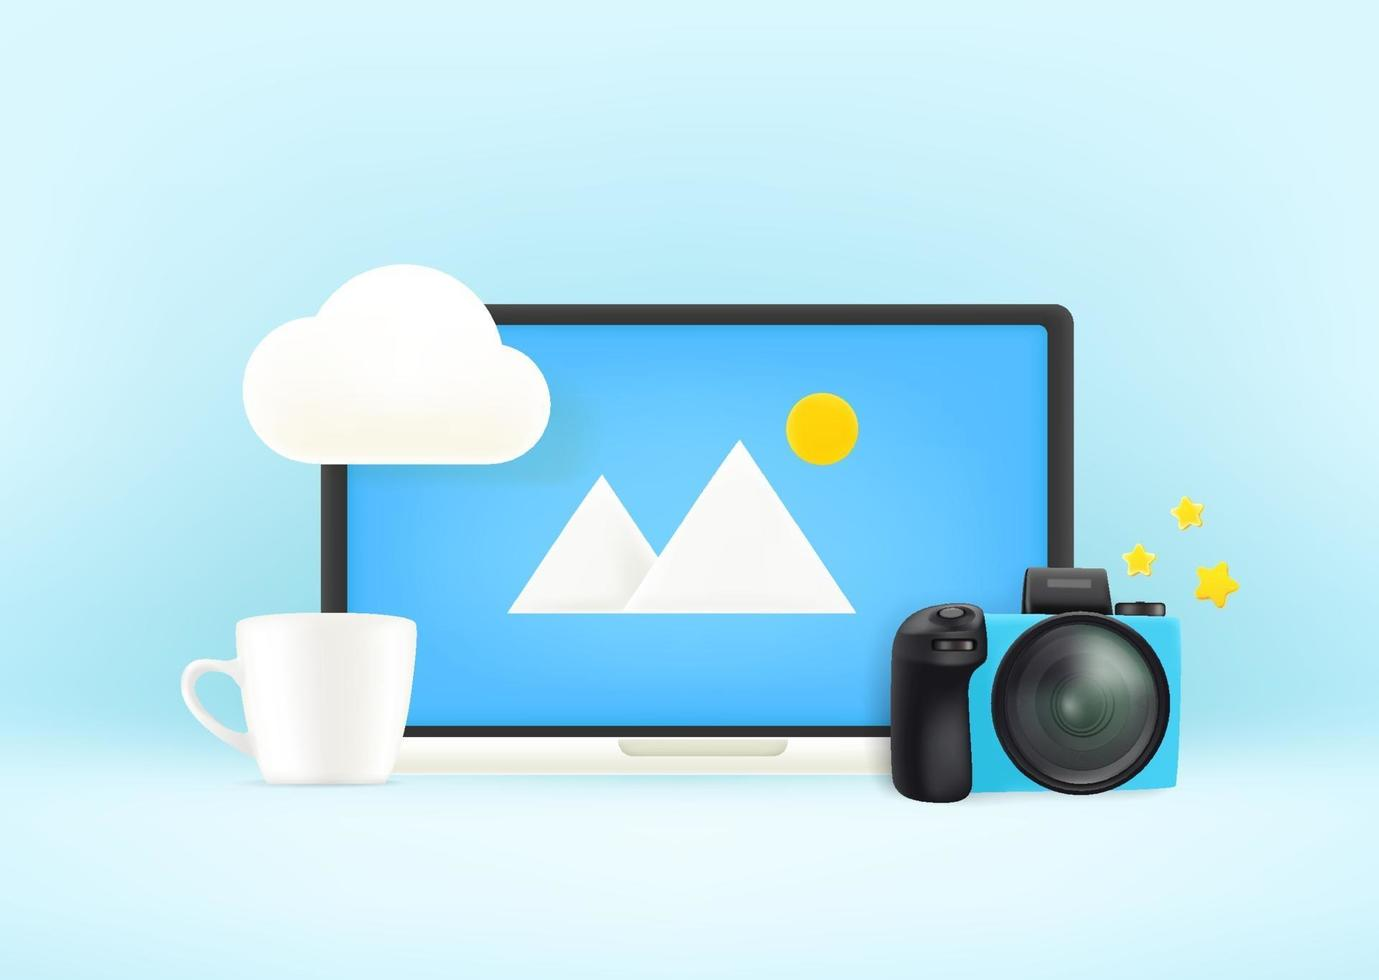 Modern laptop with camera and cup. Working place concept vector